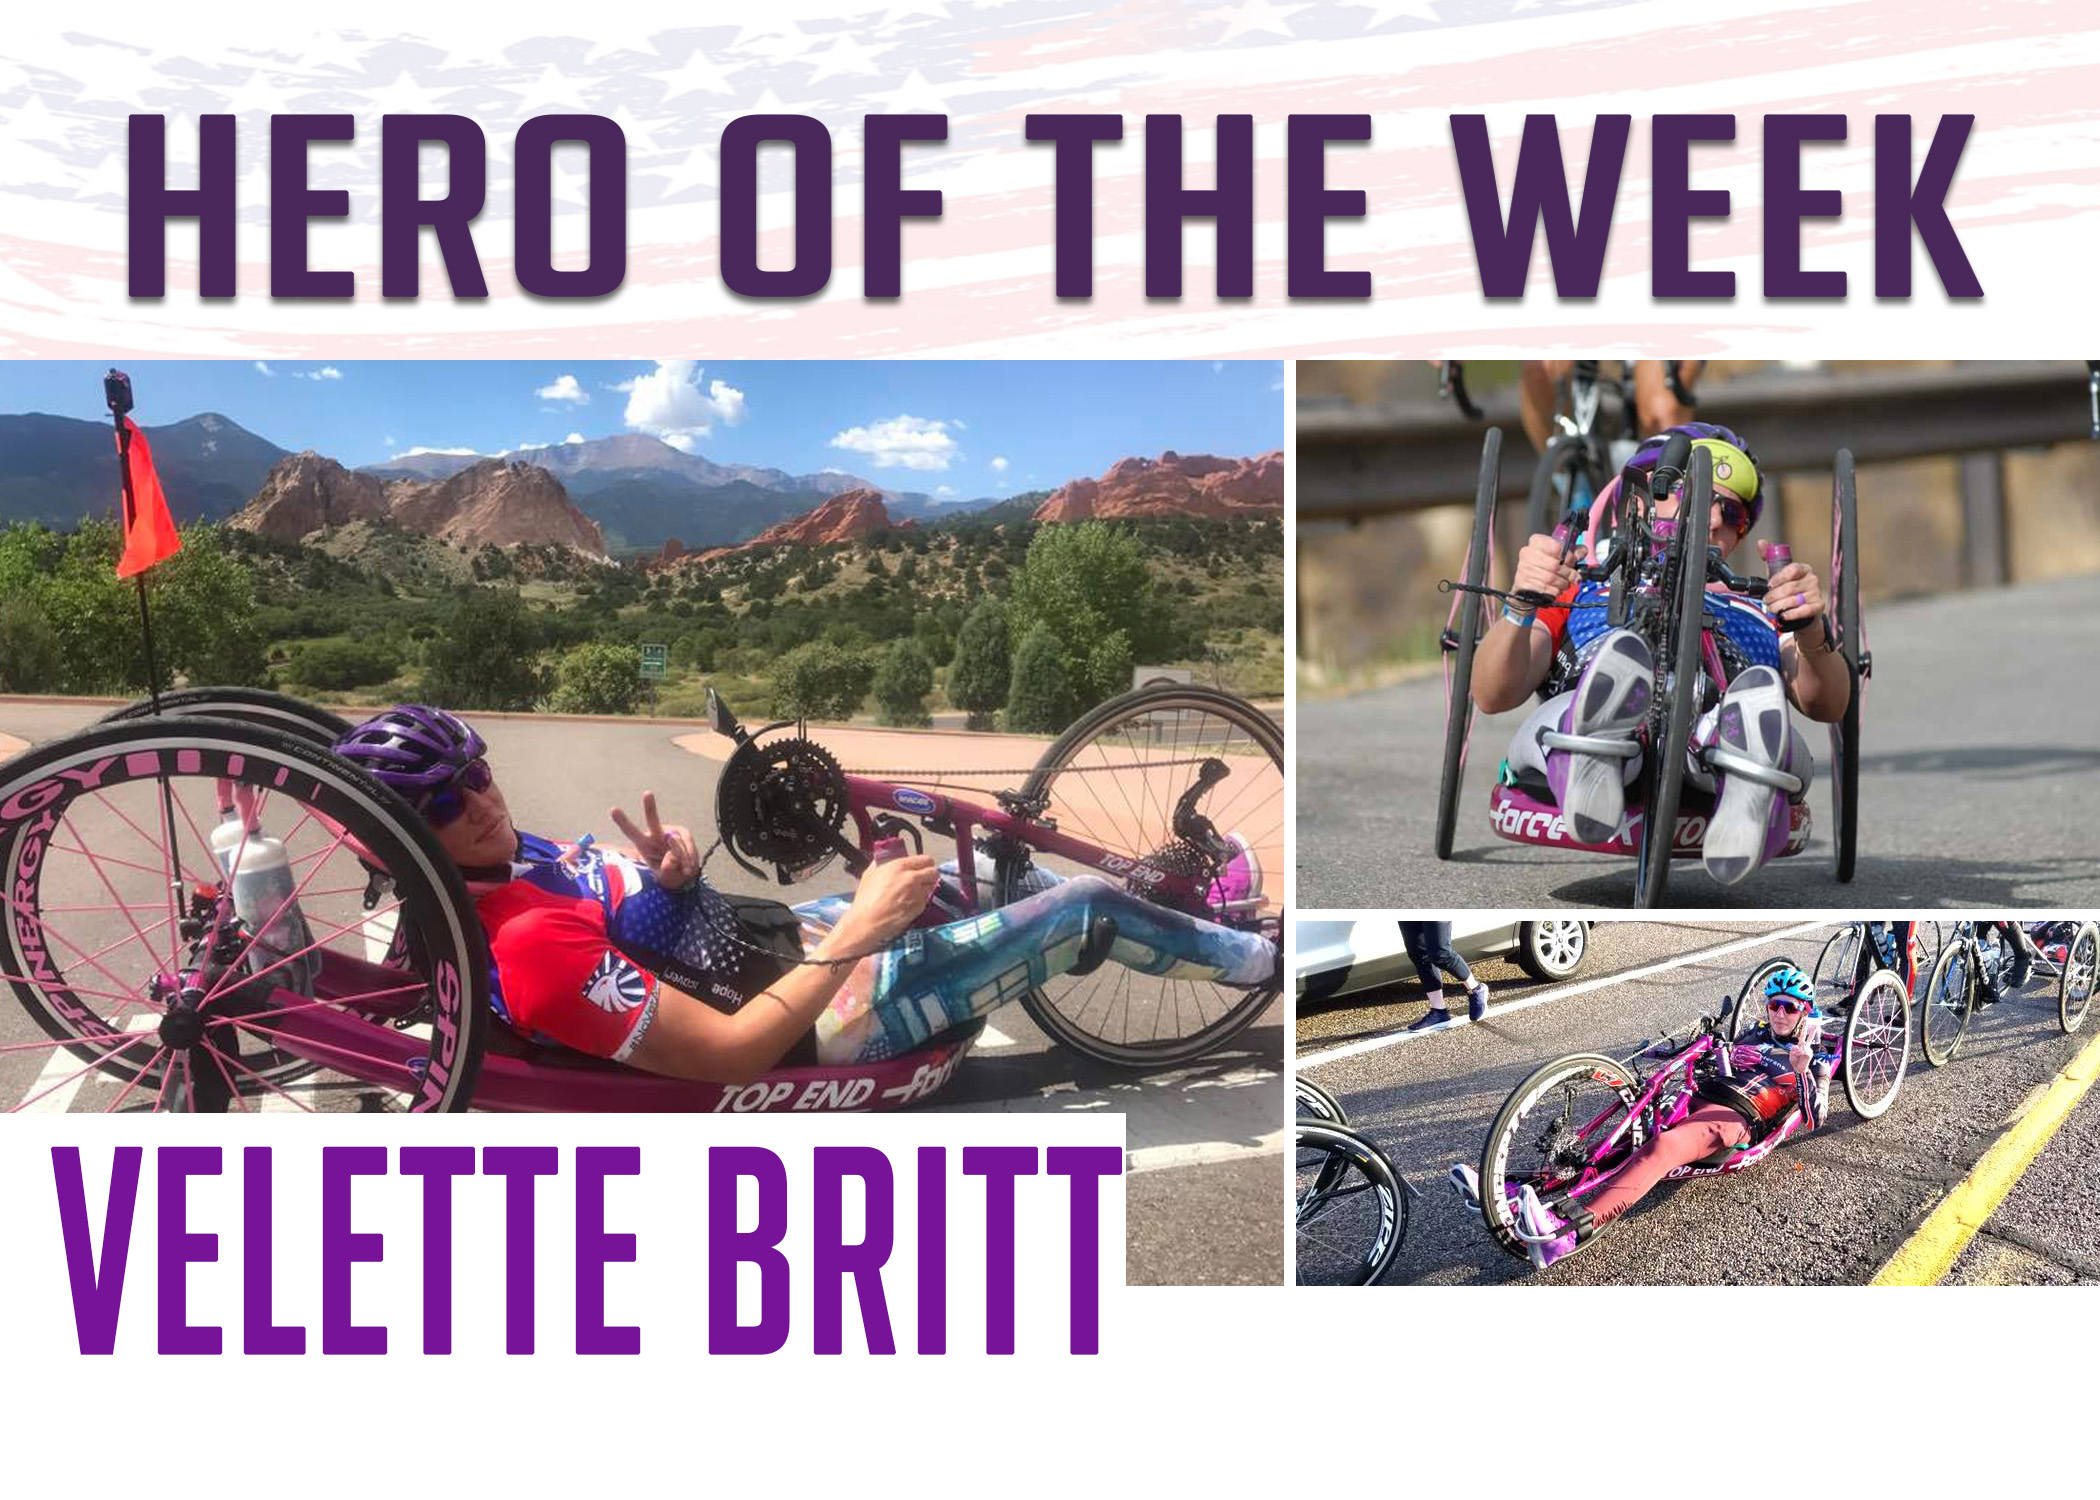 Hero of the Week: Velette Britt